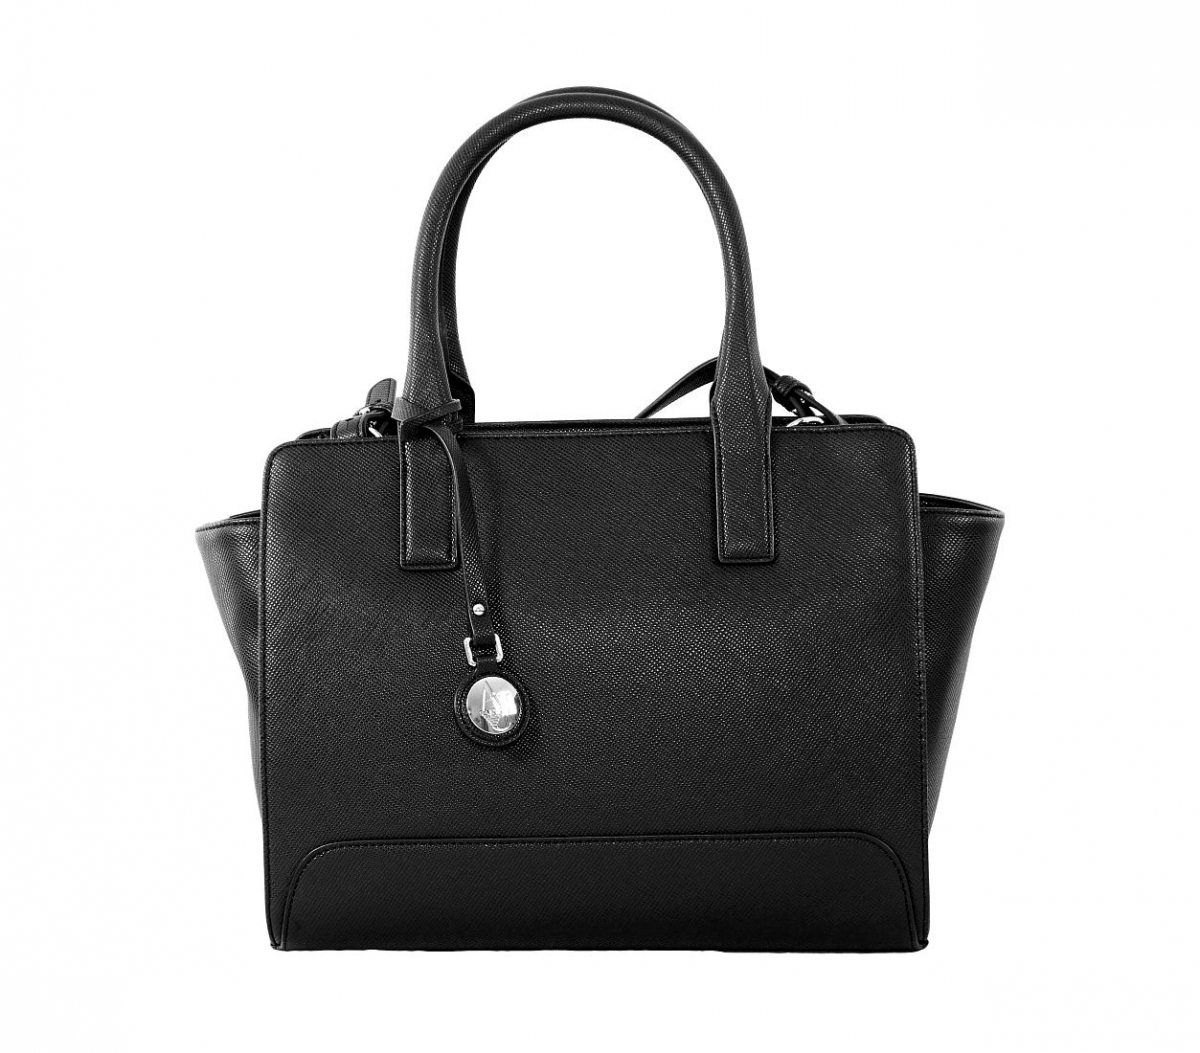 armani jeans tasche handtasche f damen c5250 r4. Black Bedroom Furniture Sets. Home Design Ideas